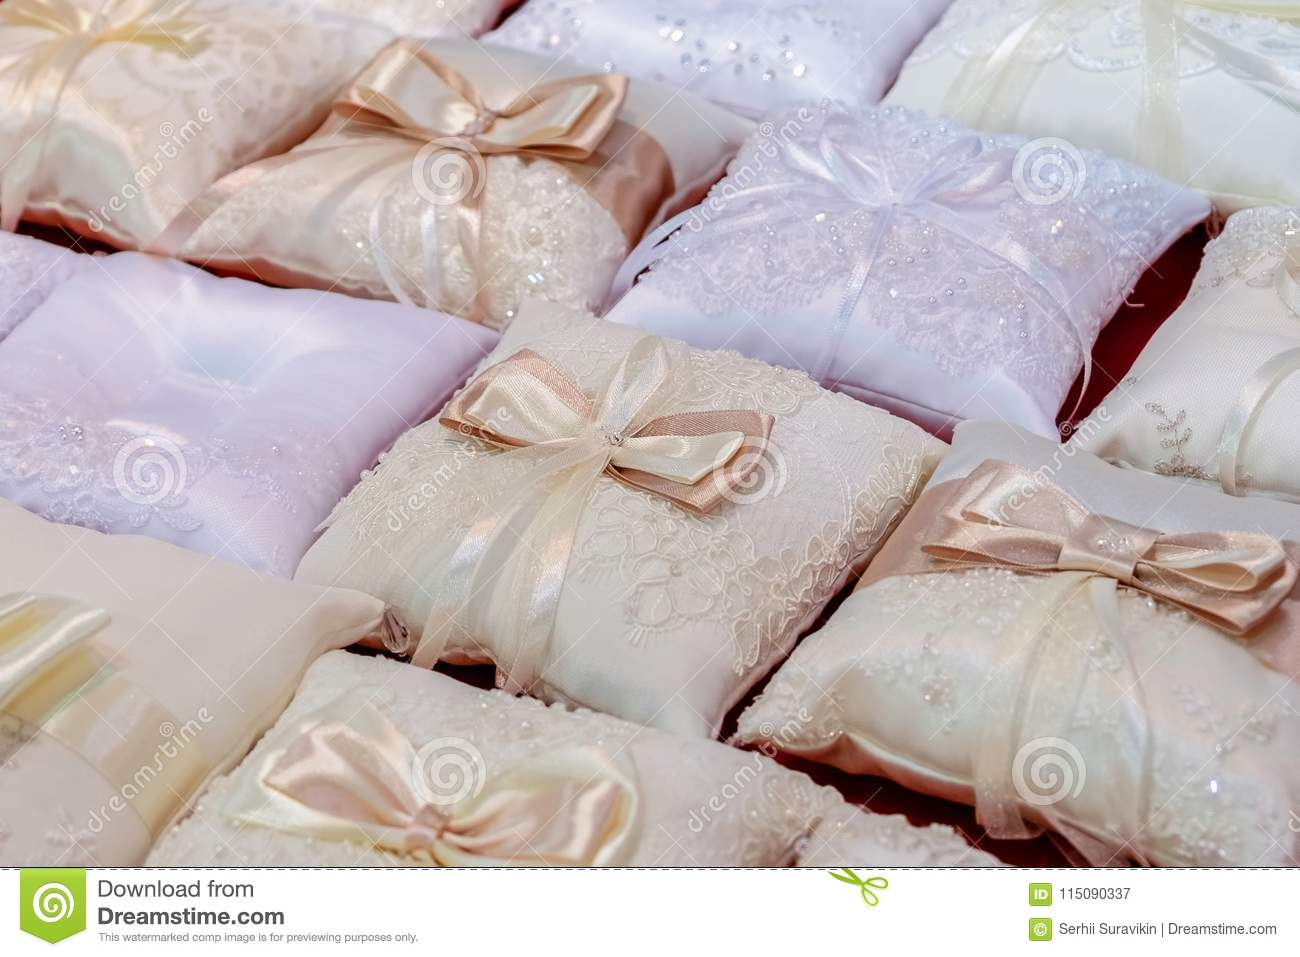 Cuscini Piccoli.Small Pillows For The Wedding Rings Stock Image Image Of Glamour